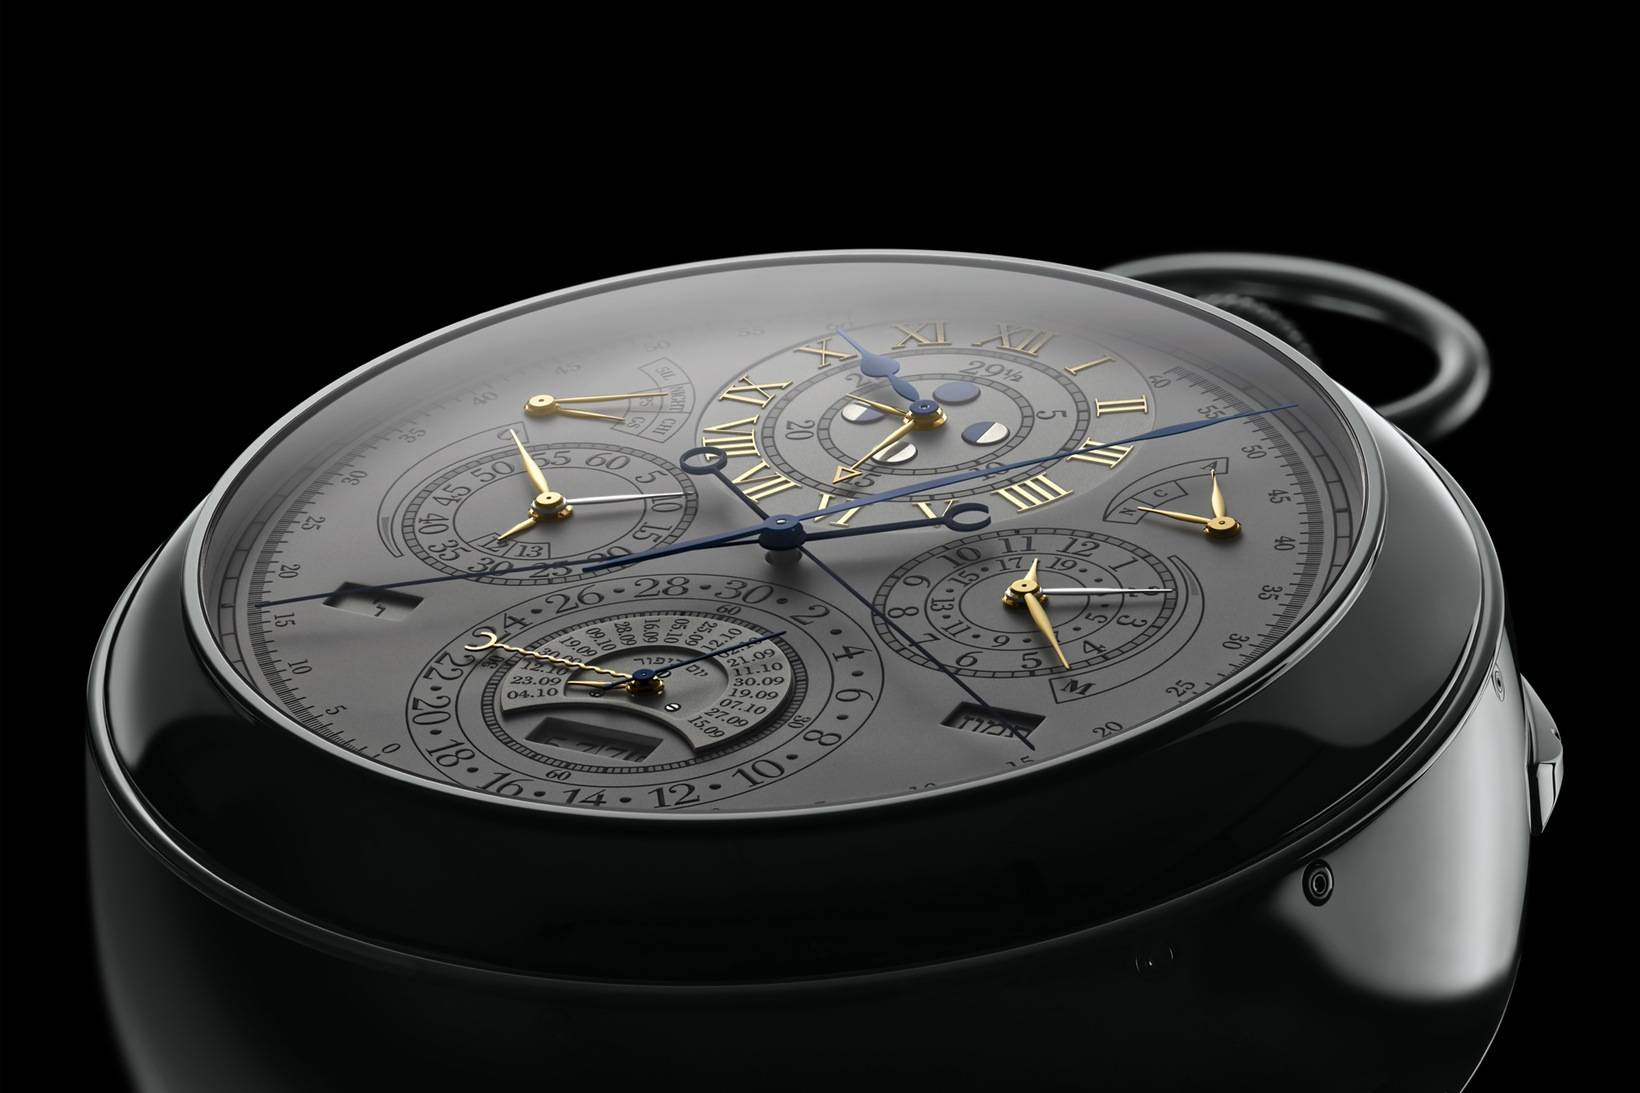 Vacheron-Constantin-Reference-57260-The-Most-Complicated-watch-ever-Pocket-Watch-260th-anniversary